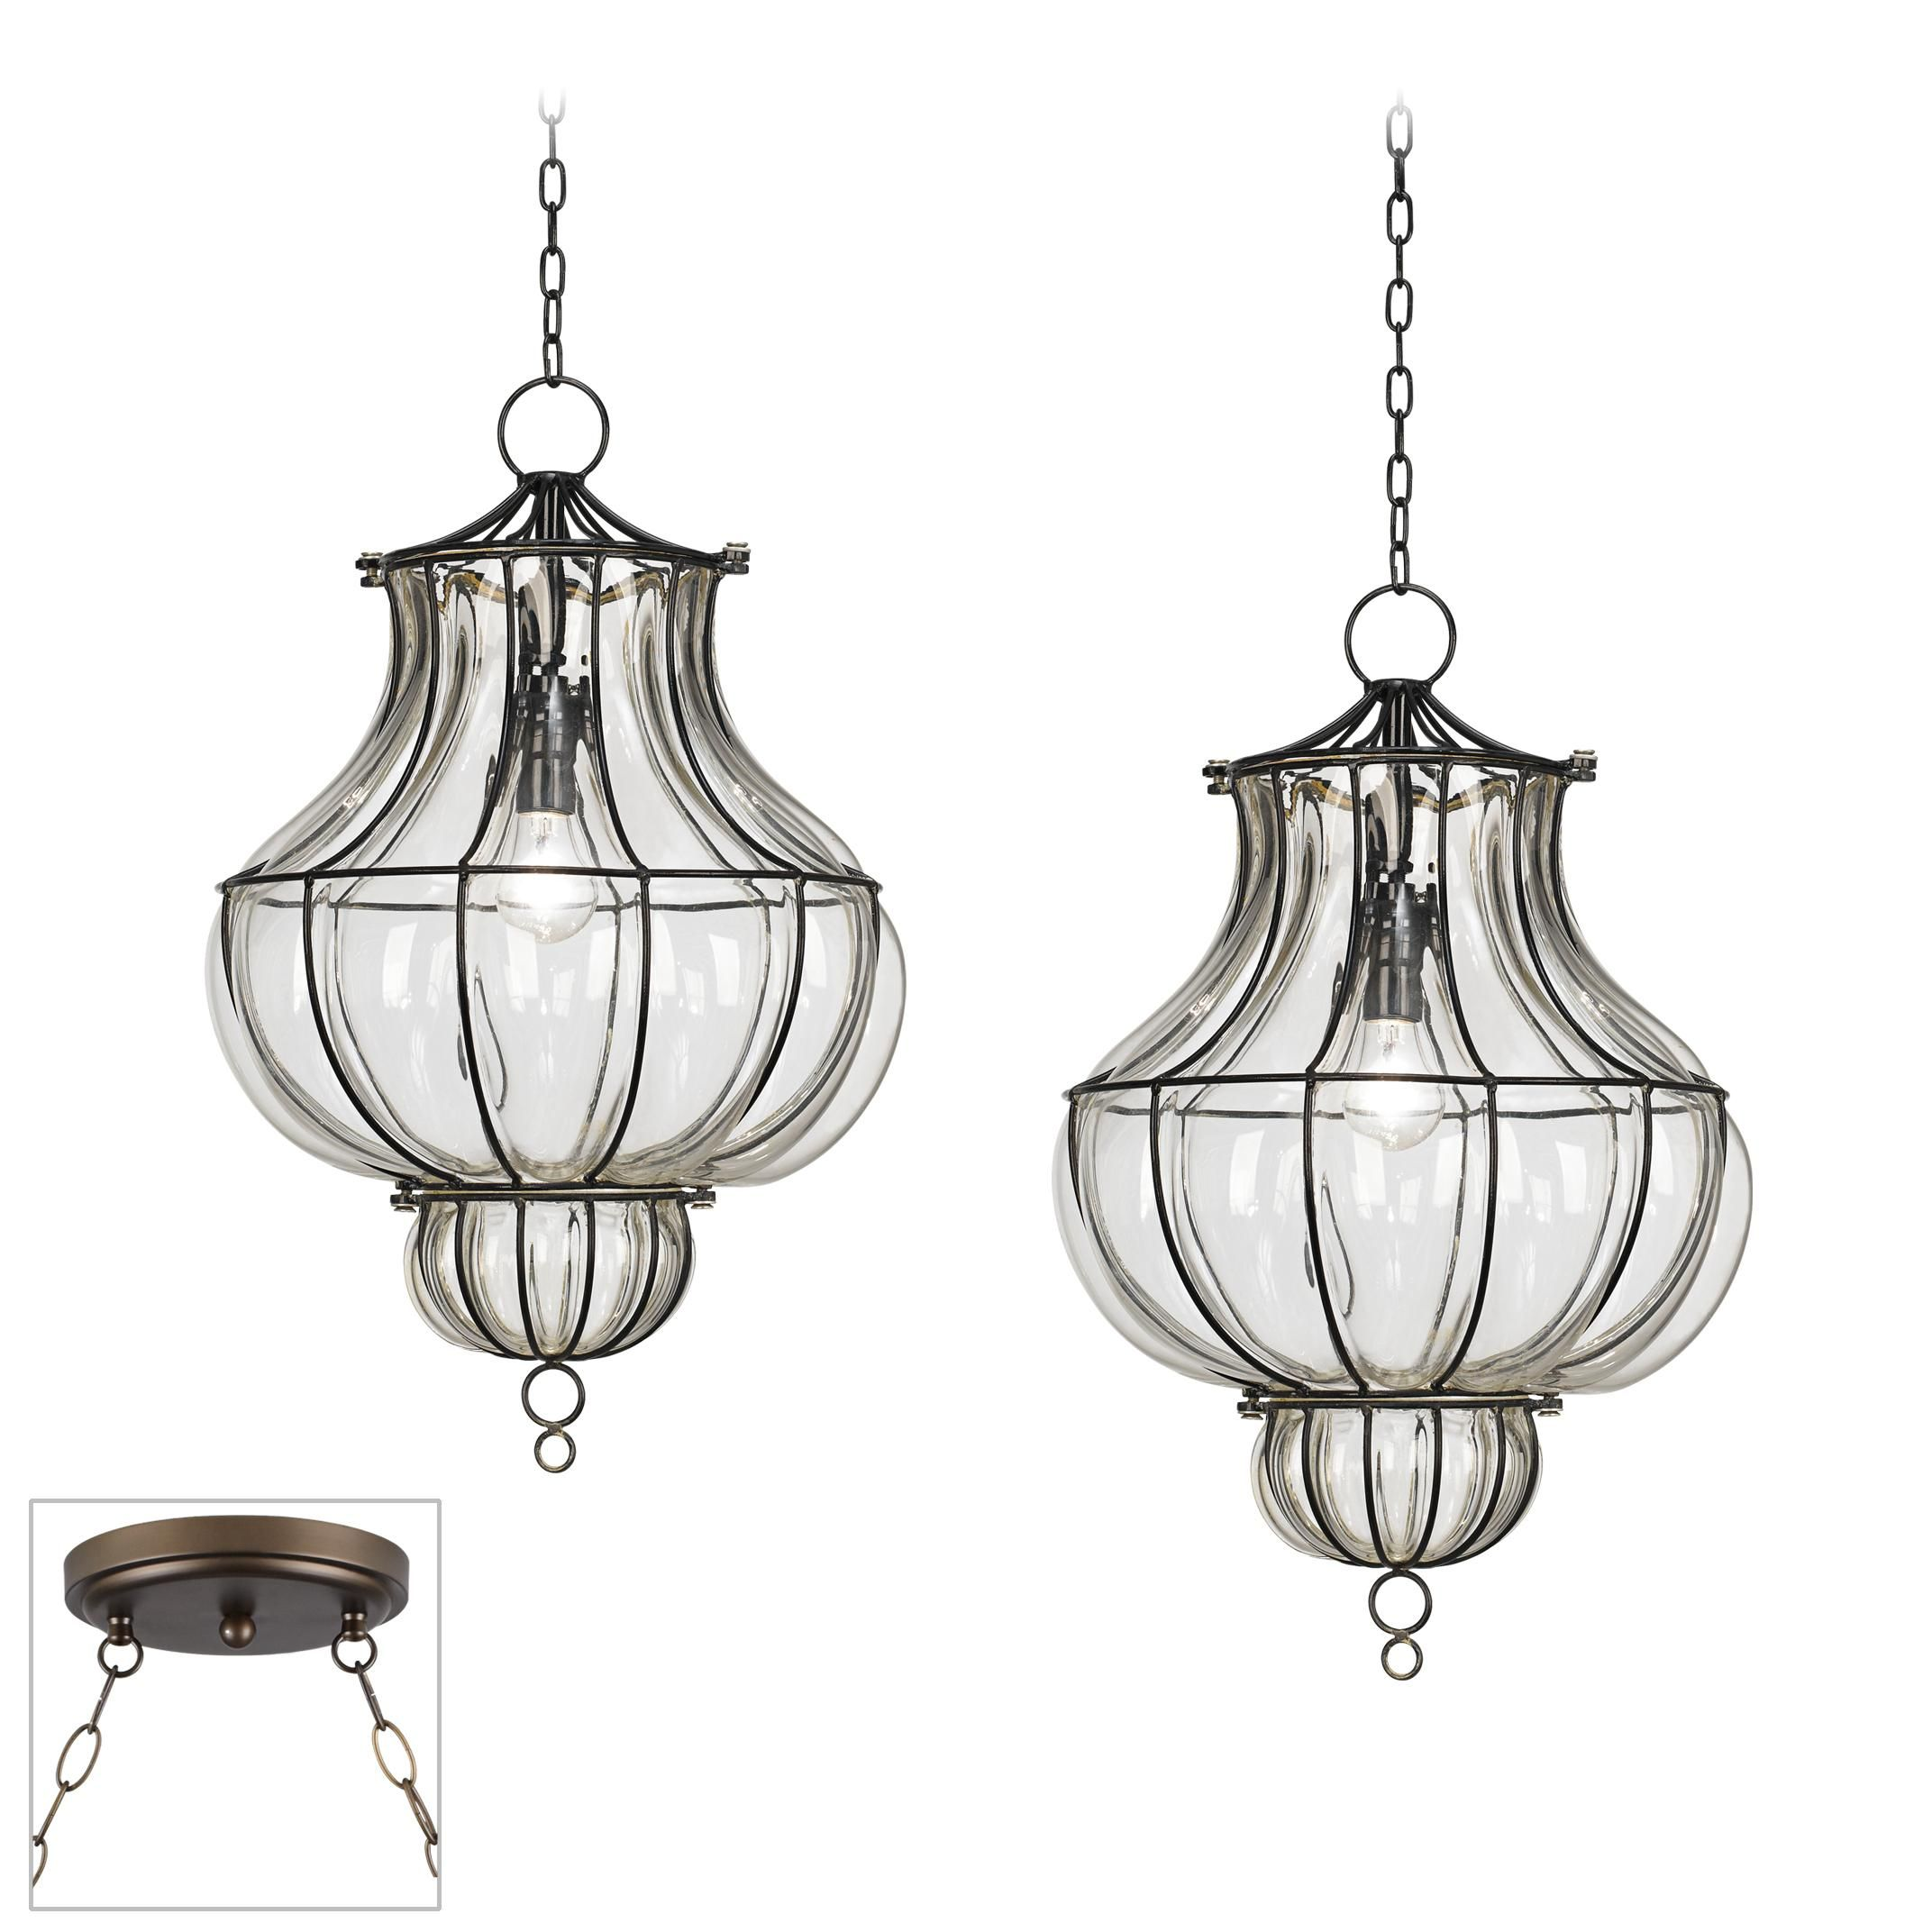 Double swag lantern chandelier Living Room Project